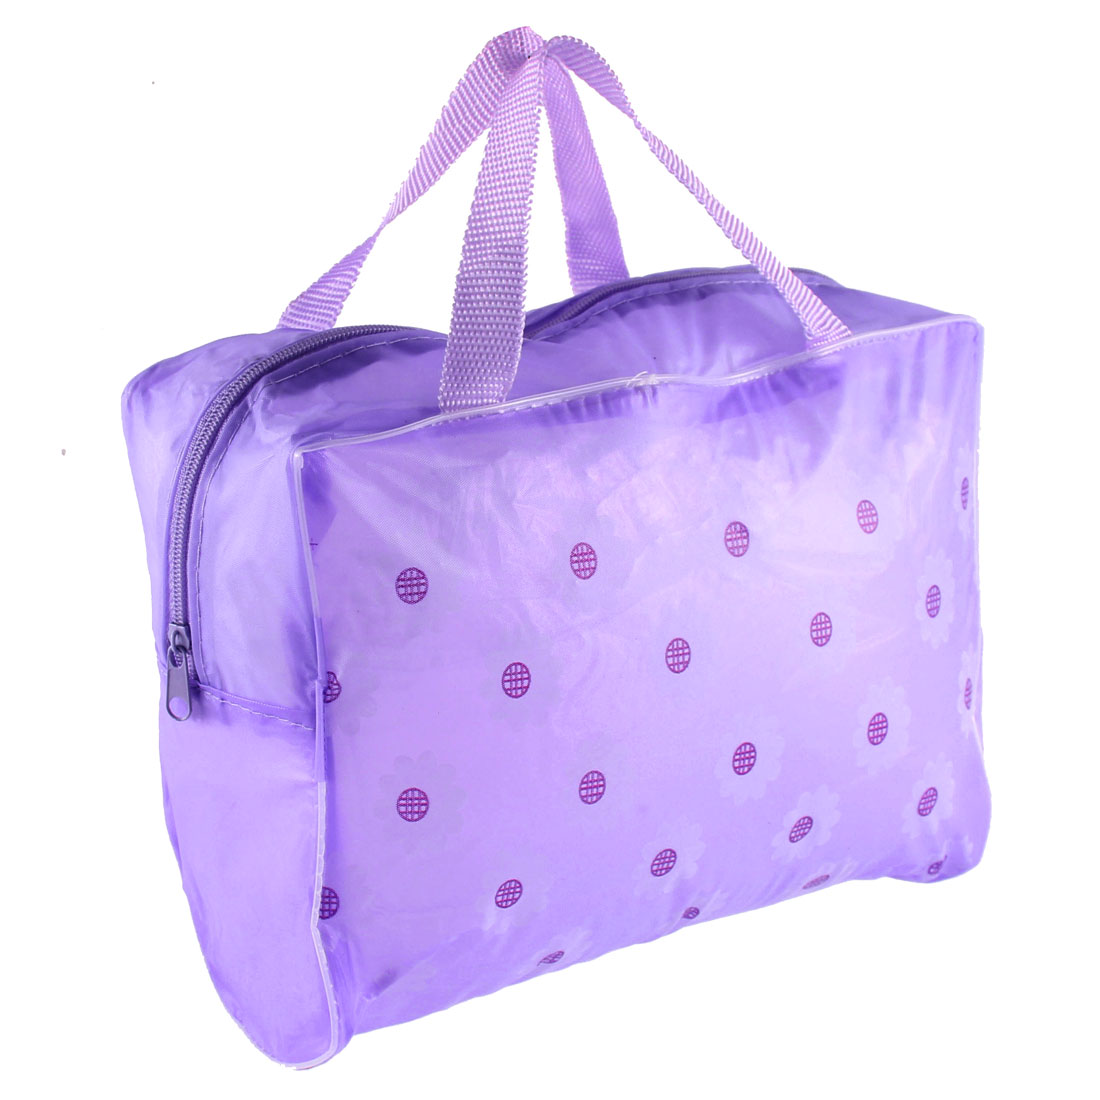 Travel Zipper Closure Floral Pattern Transparent Waterproof Makeup Bag Cosmetic Case Toiletry Storage Bathing Pouch Purple